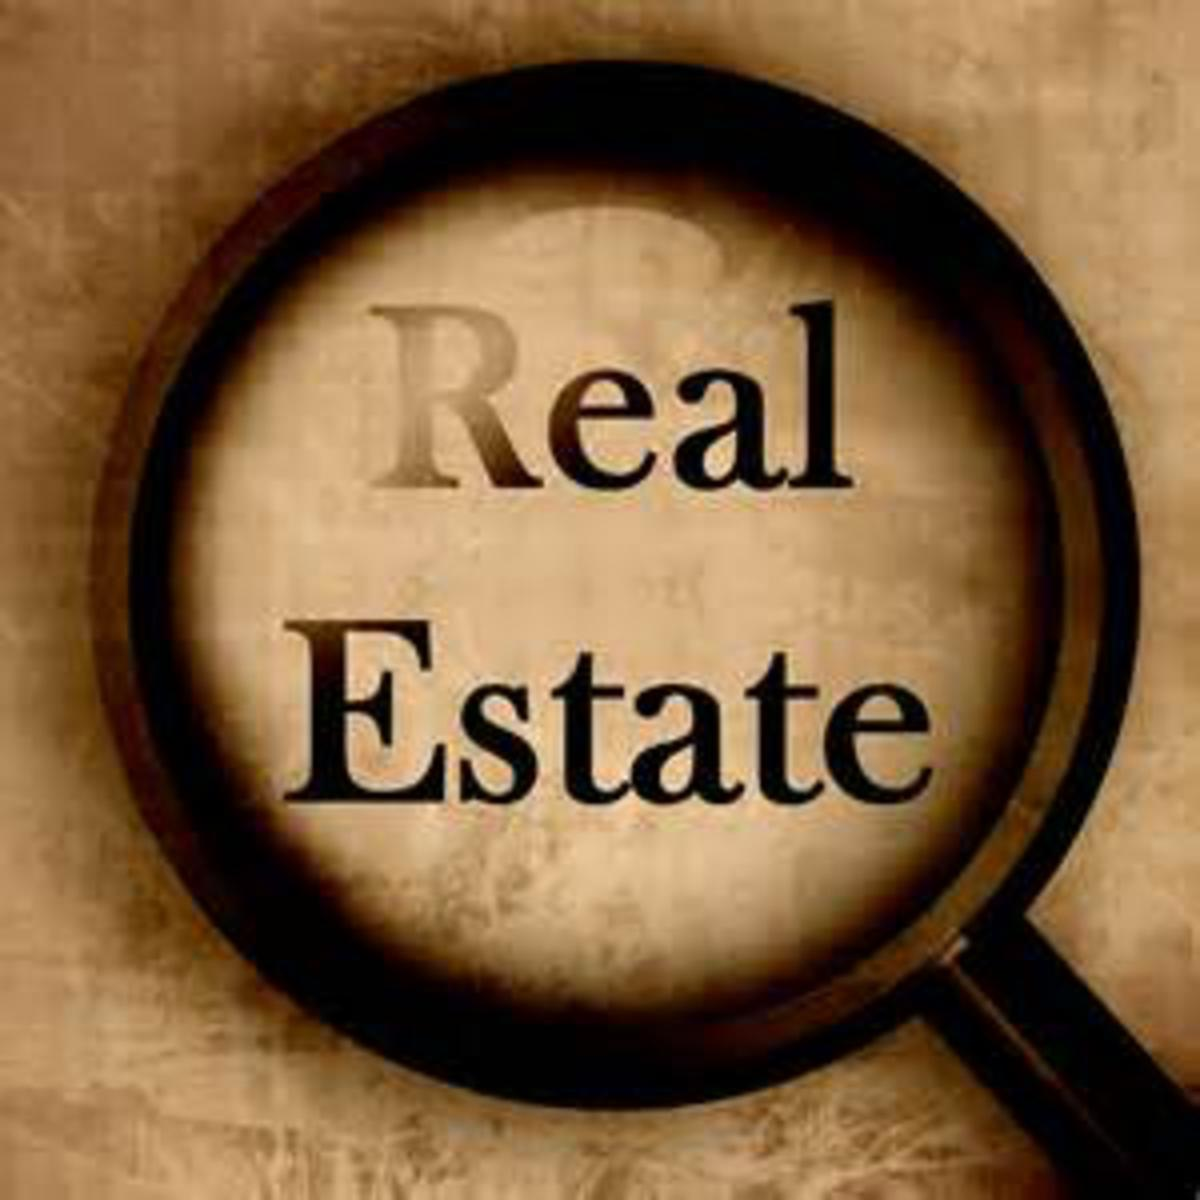 Q&A: Check out Property before Auction?